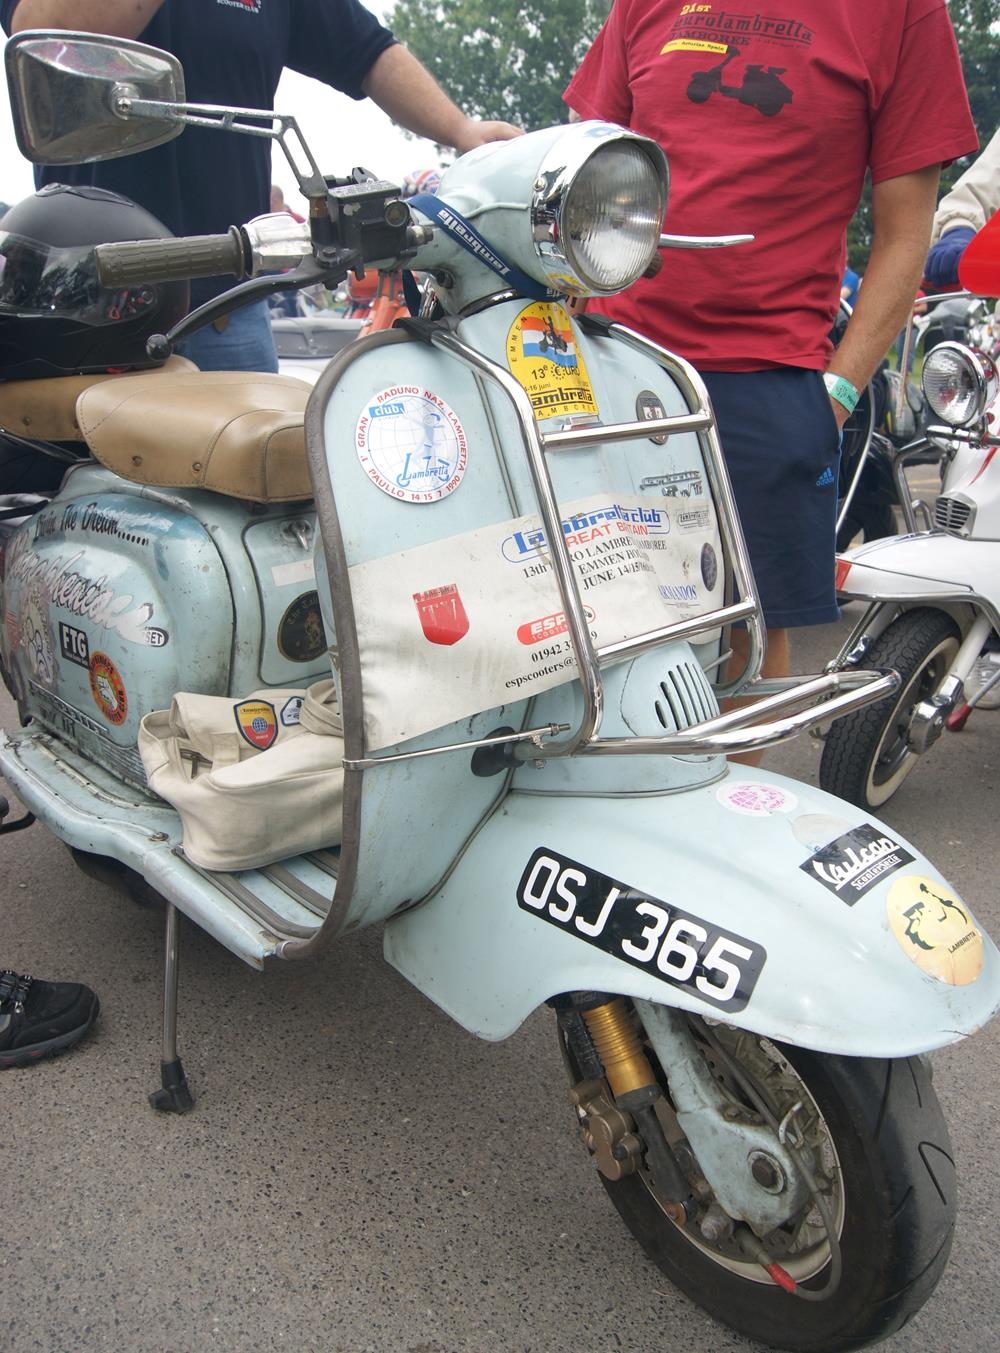 Lambretta scooter covered in stickers including Modrapheniacs Scooter Club ones on the side panels